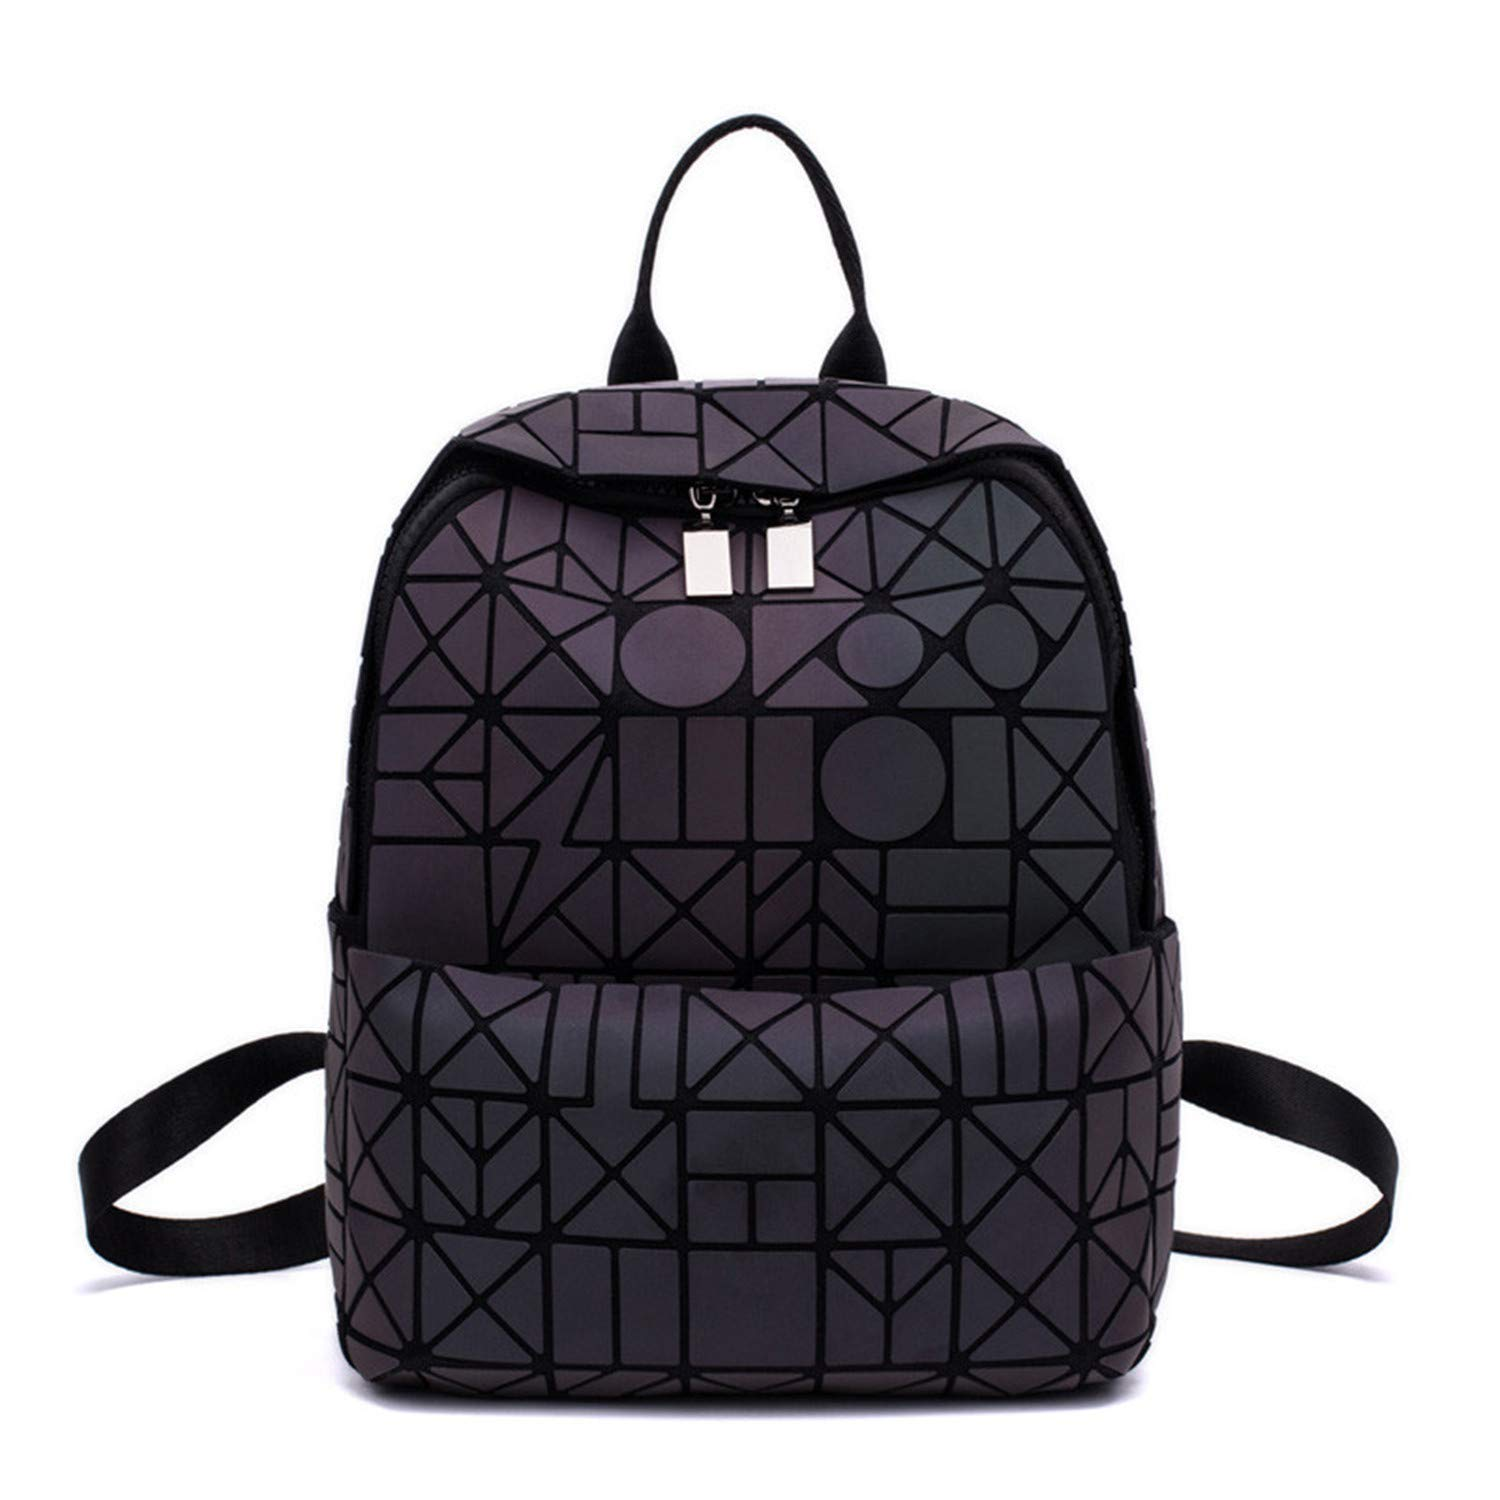 Amazon.com: Women Geometric Patchwork Diamond Backpack for ...